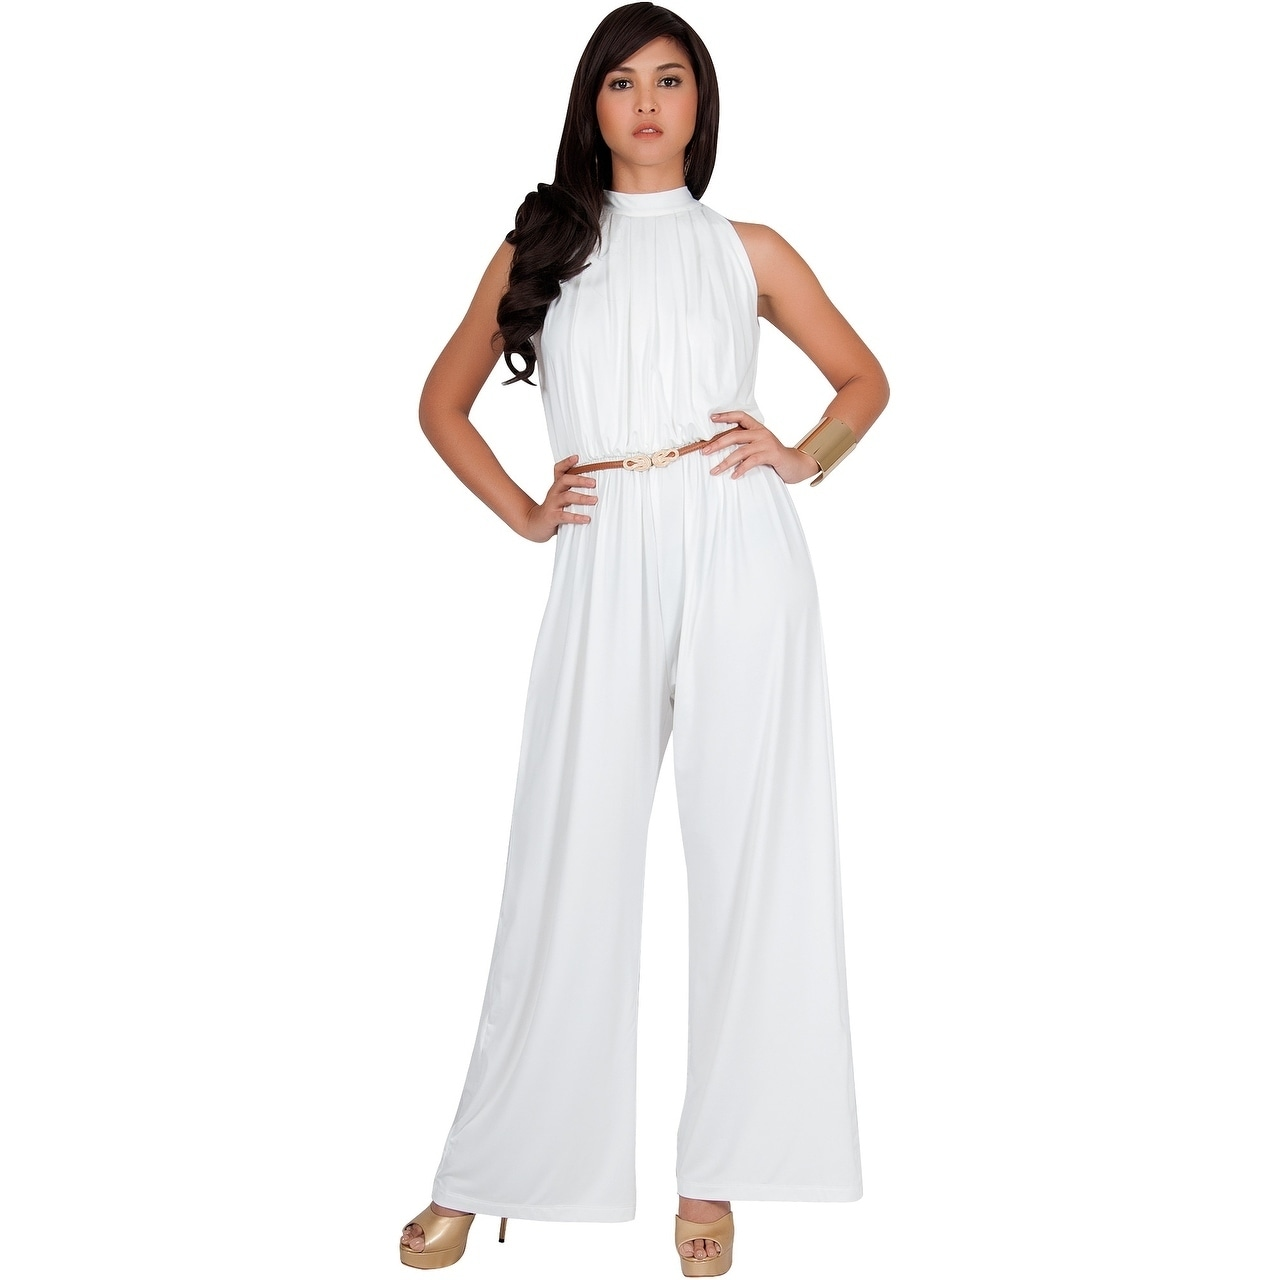 29f95d8b2b14 Shop KOH KOH Women Beautiful Sleeveless Halter Neck Casual Work Jumpsuits -  Free Shipping On Orders Over  45 - Overstock - 20680114